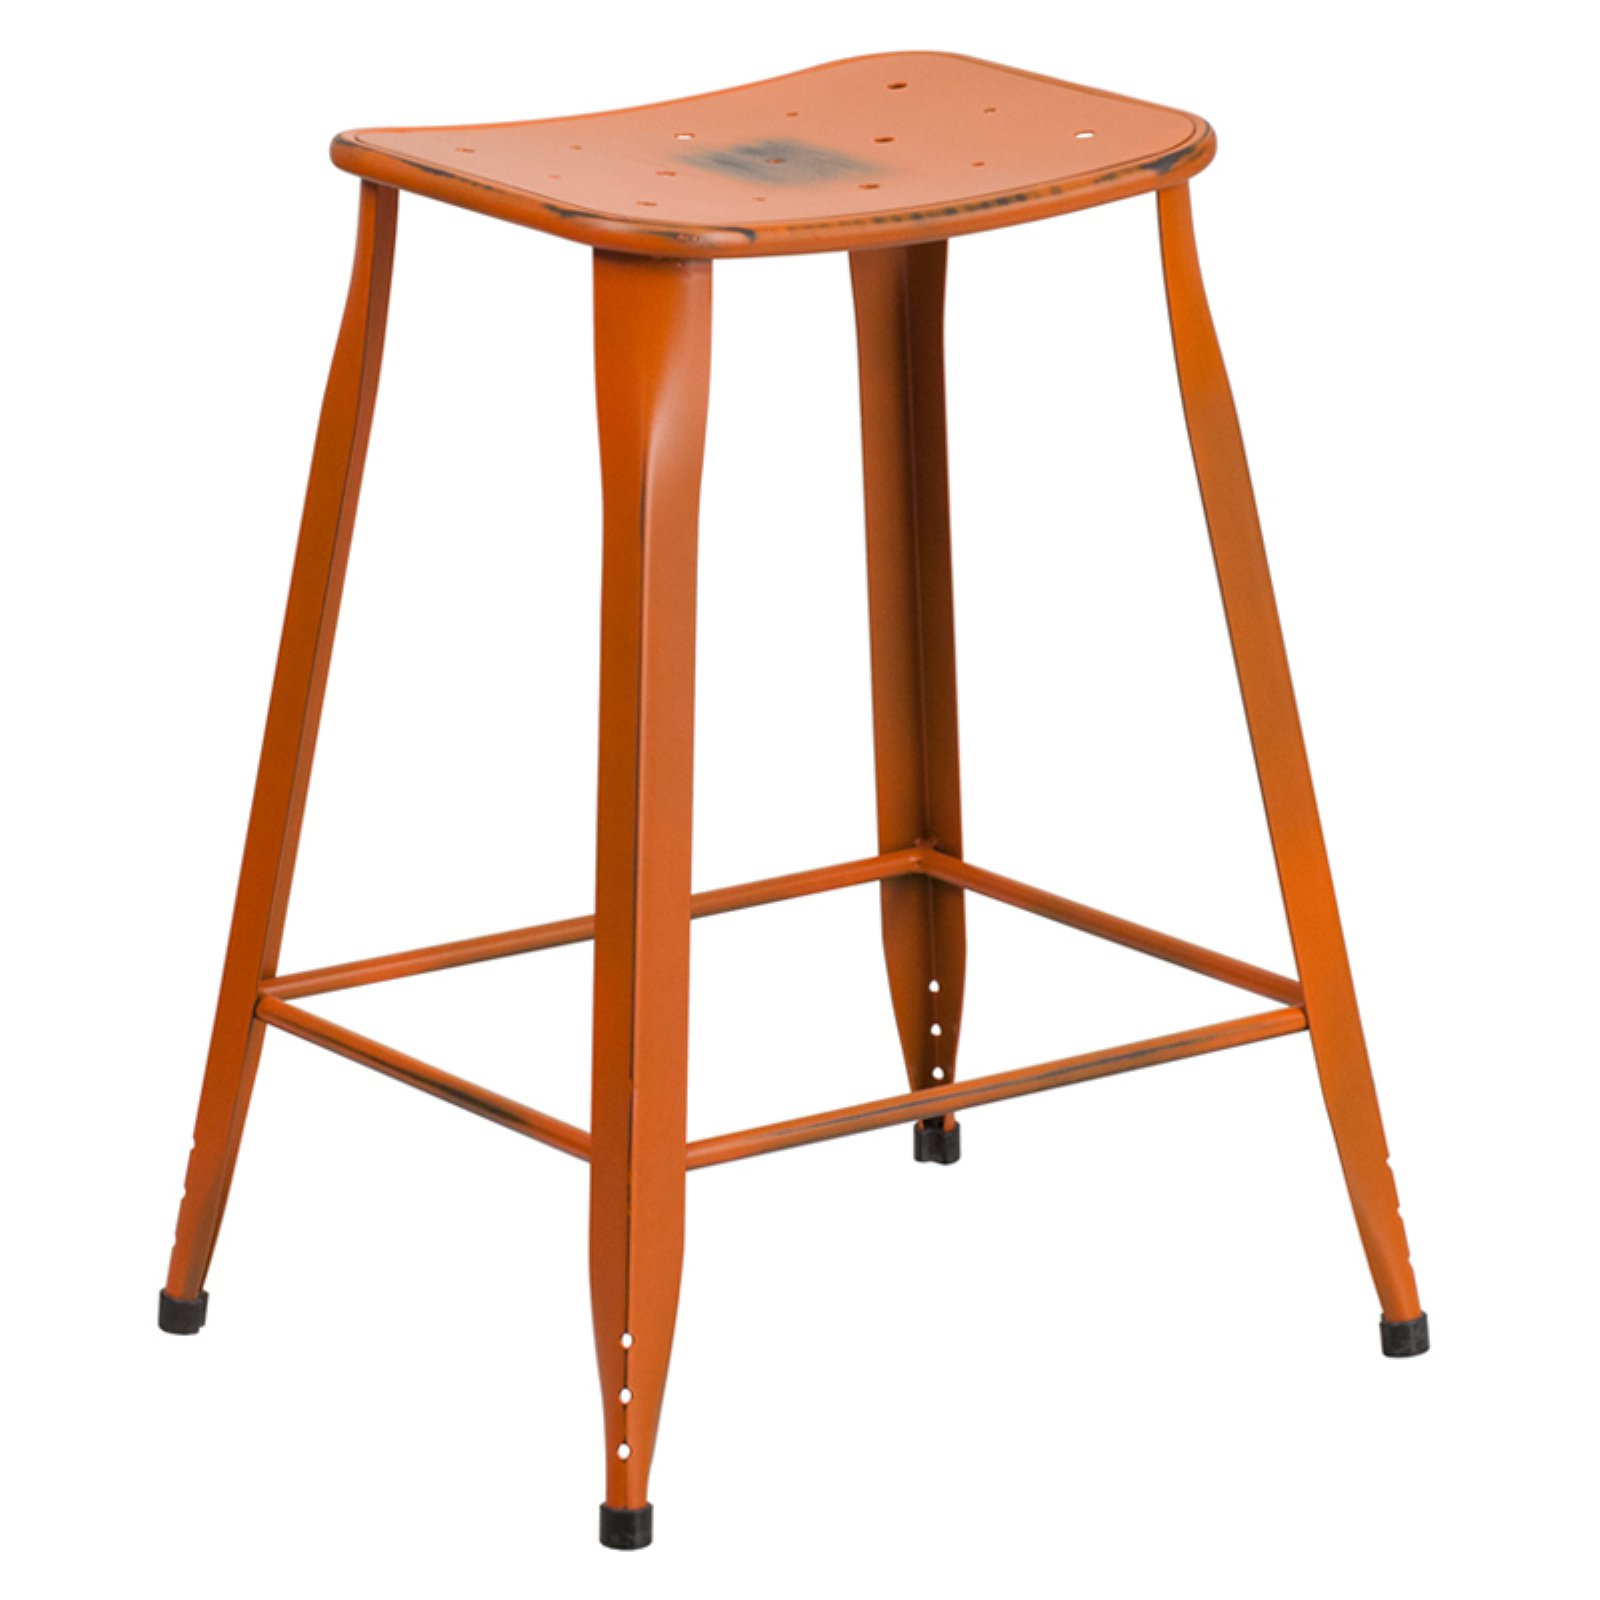 Flash Furniture 24 in. High Distressed Metal Indoor/Outdoor Counter Stool